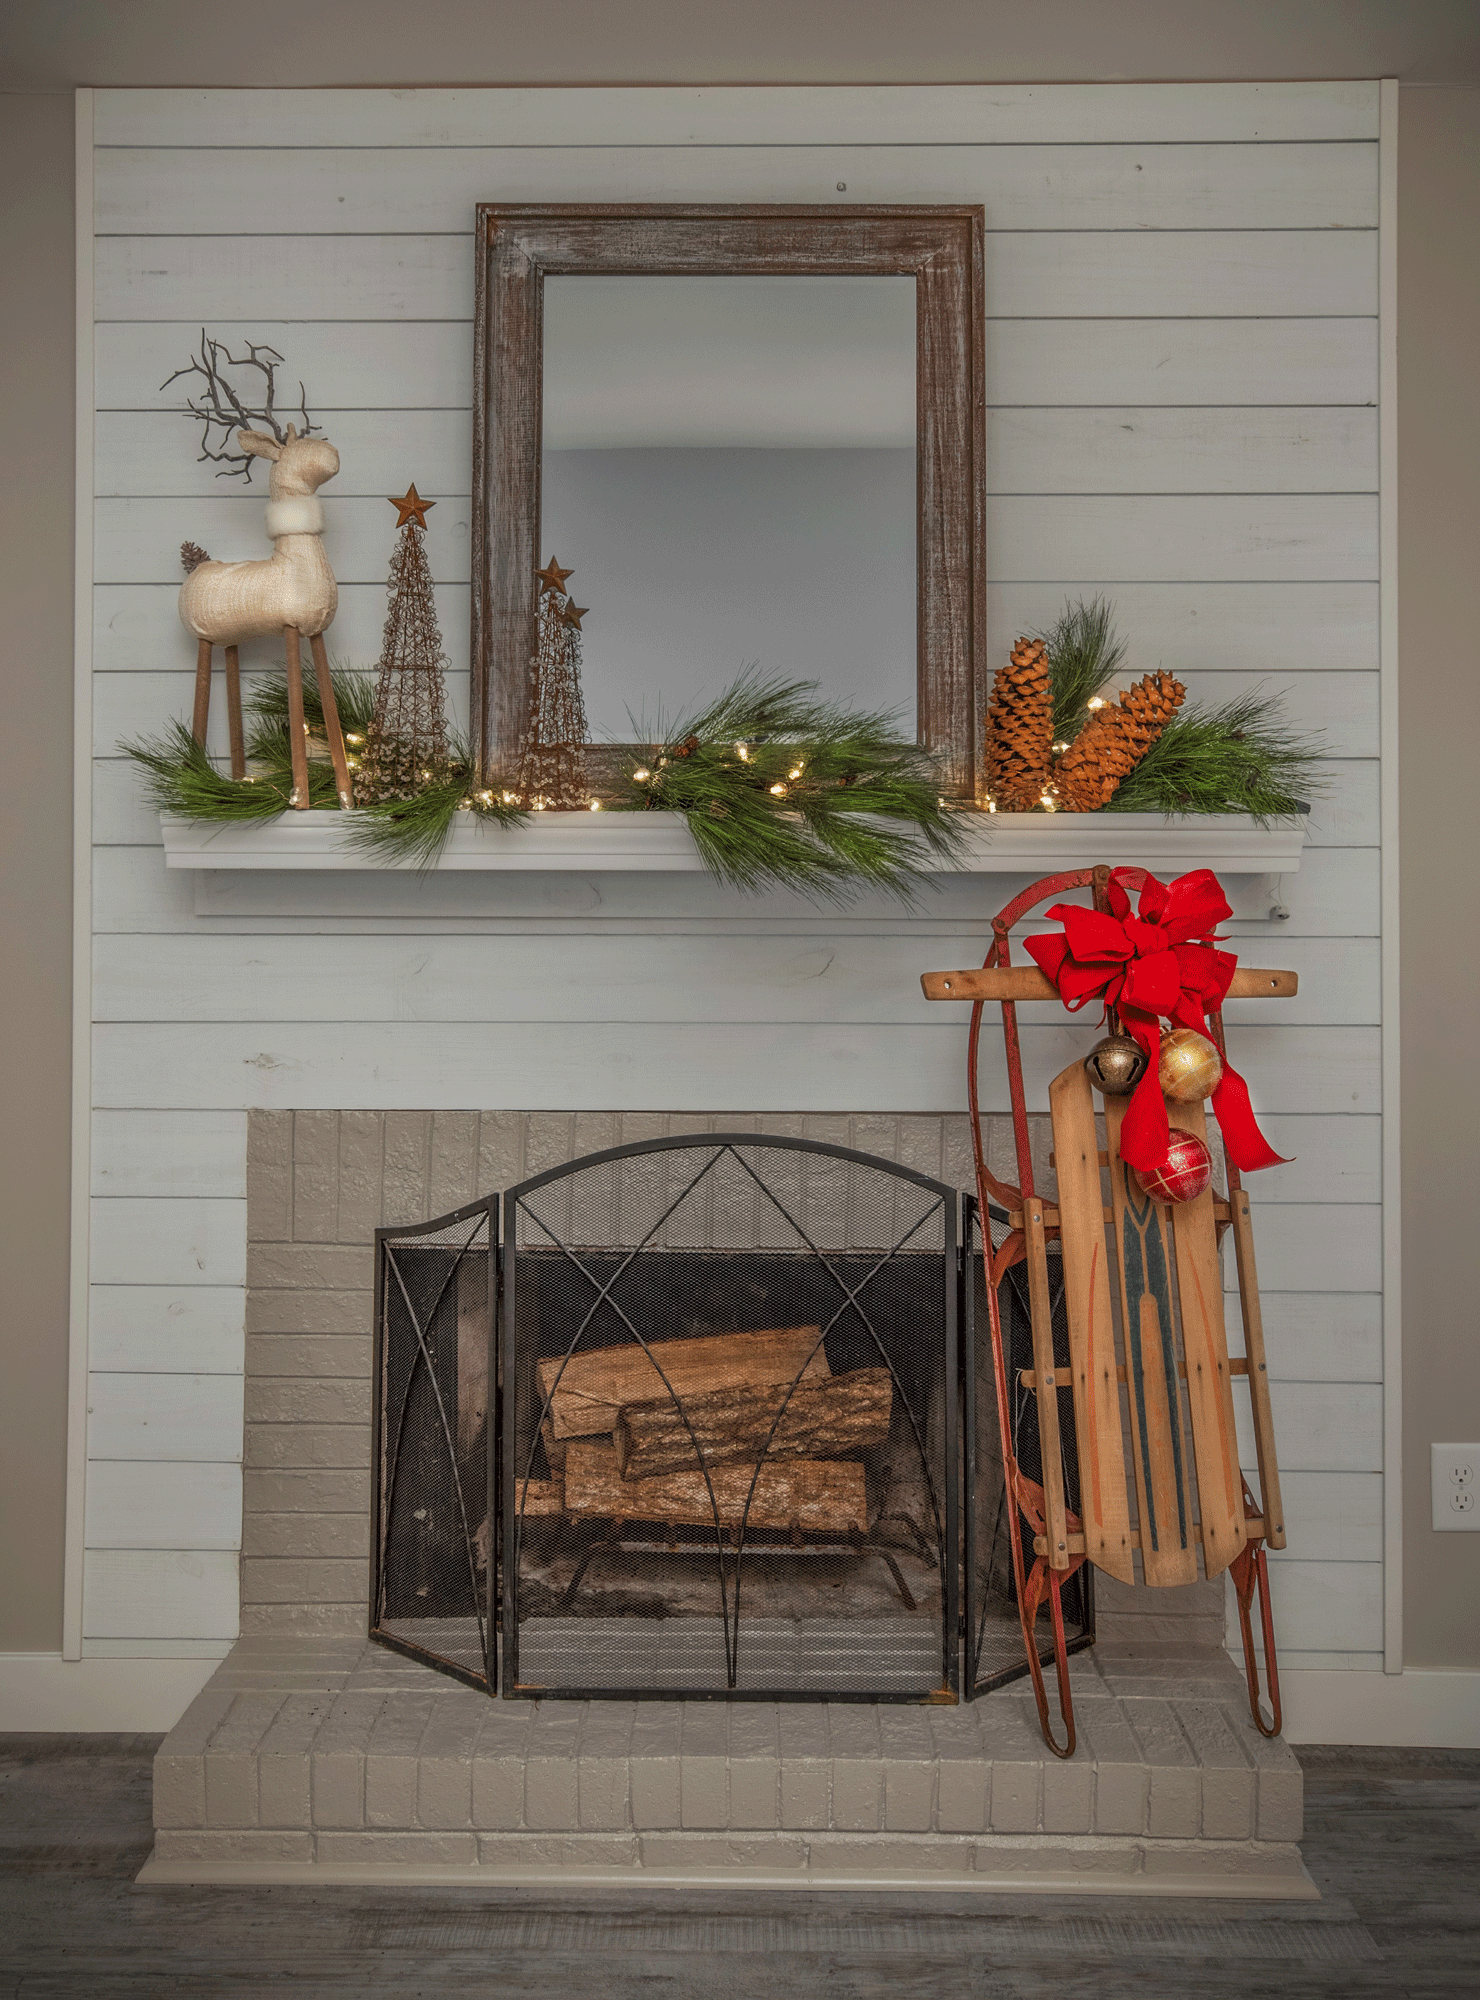 Fireplace mantle design with holiday decor, reindeer, mirror, pinecones, sled